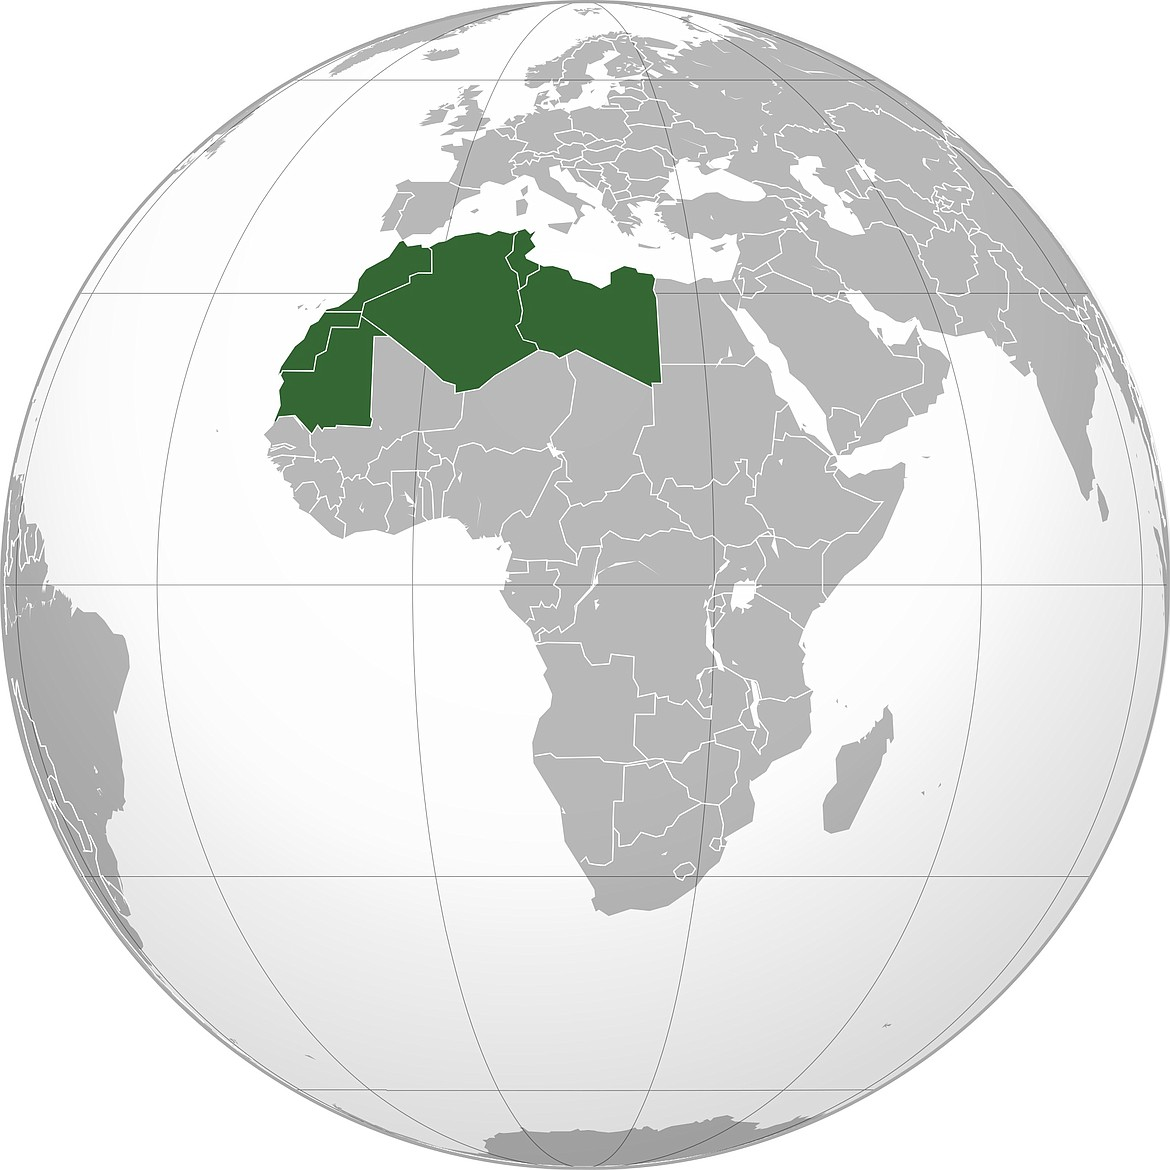 Geographic region called the Maghreb, where the Moors came from, crossing the strait of Gibraltar, bringing Islam to the Iberian Peninsula in 711 A.D.